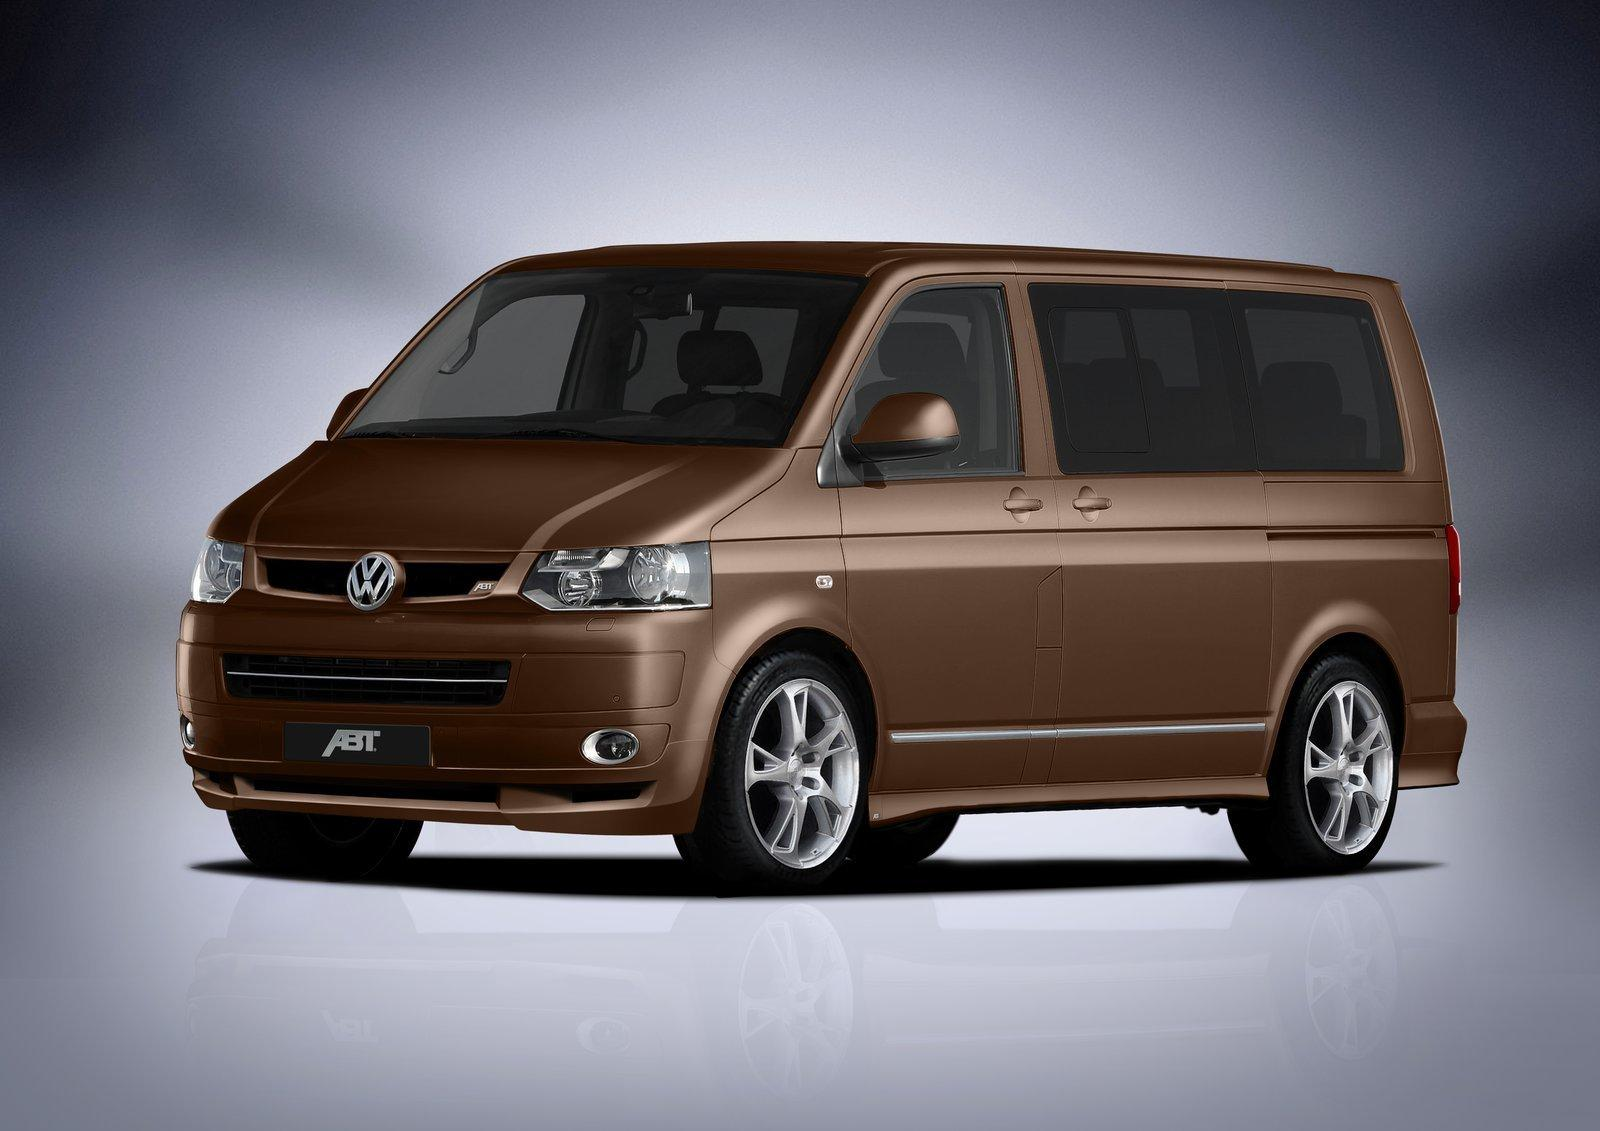 vw multivan t5 abt. Black Bedroom Furniture Sets. Home Design Ideas